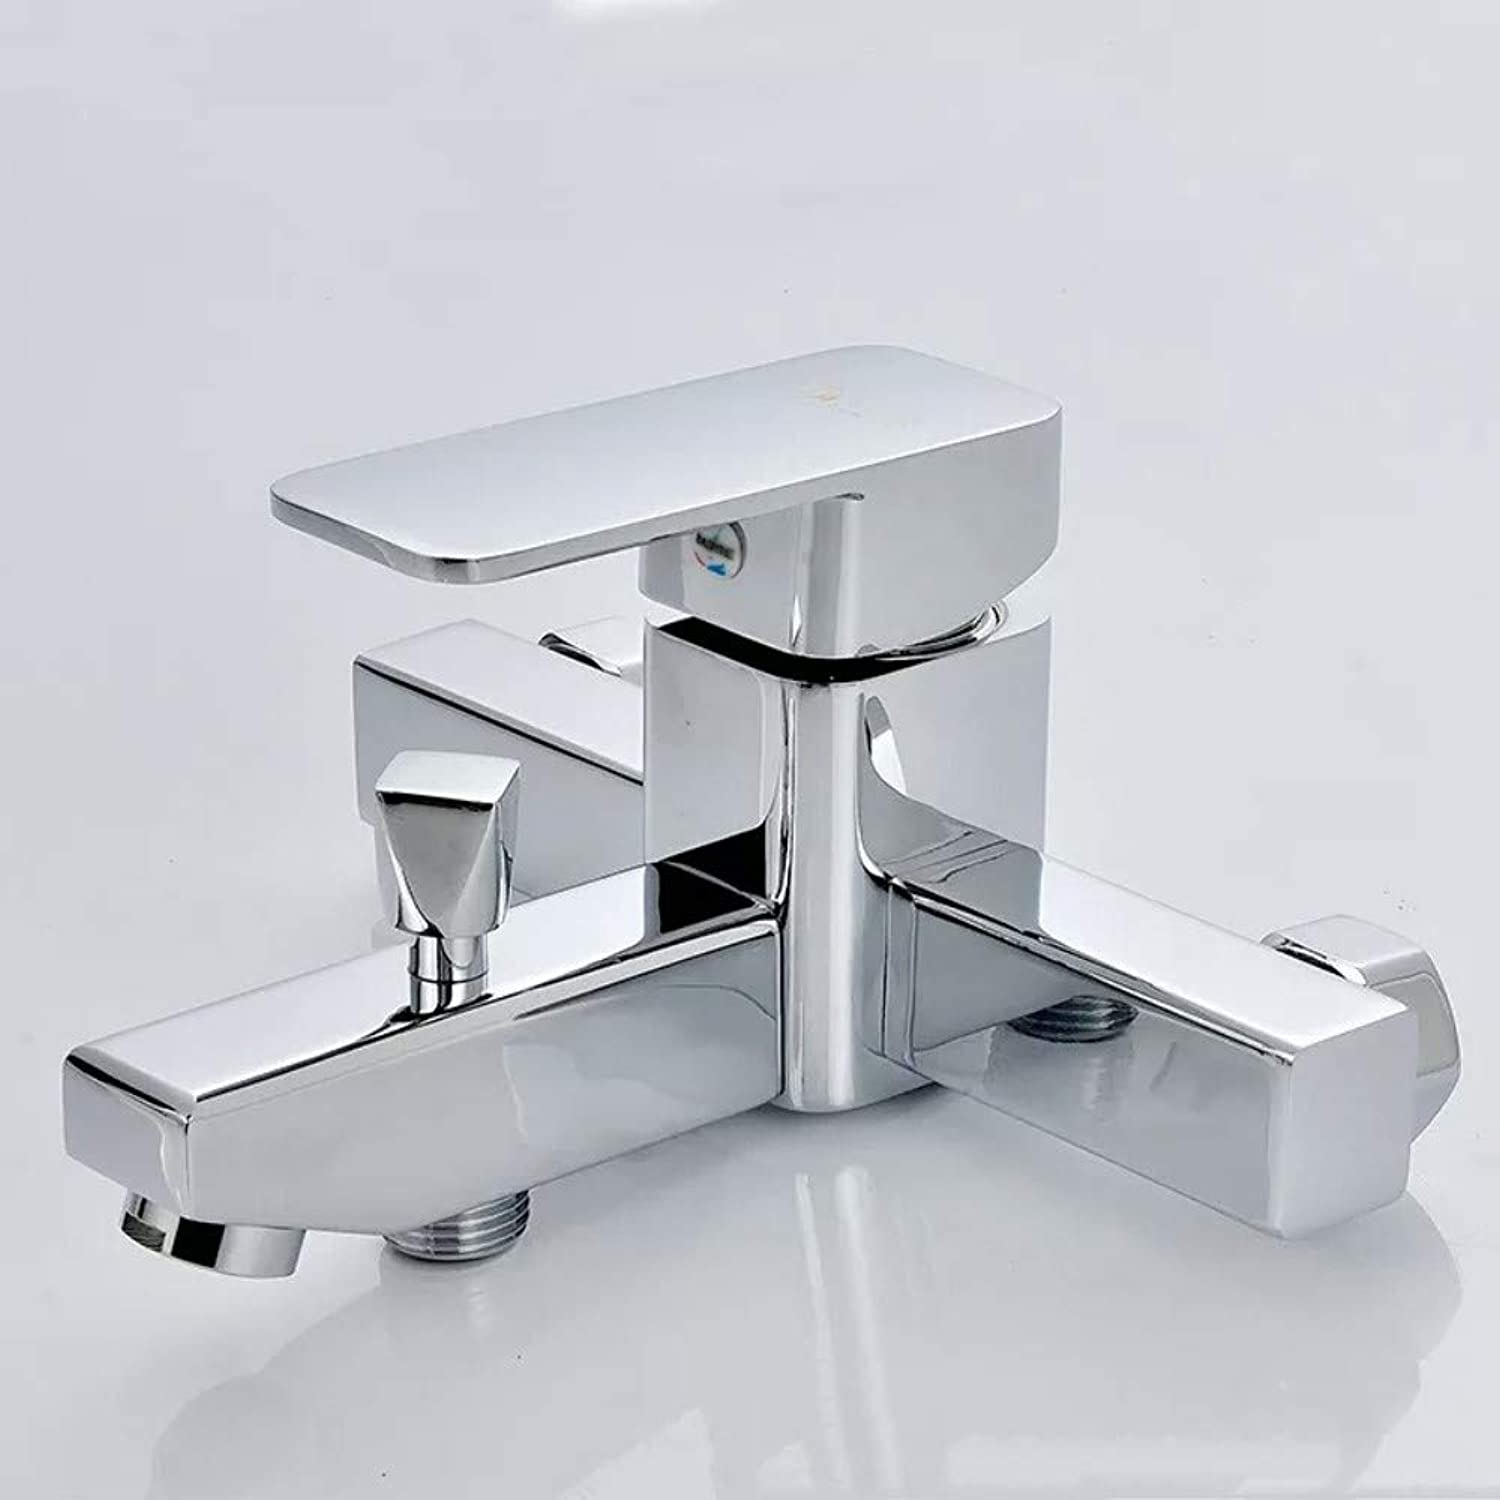 Triple Shower Faucet Wall-Mounted Hot and Cold Mixing Valve Bathroom Shower Faucet Bathtub Faucet